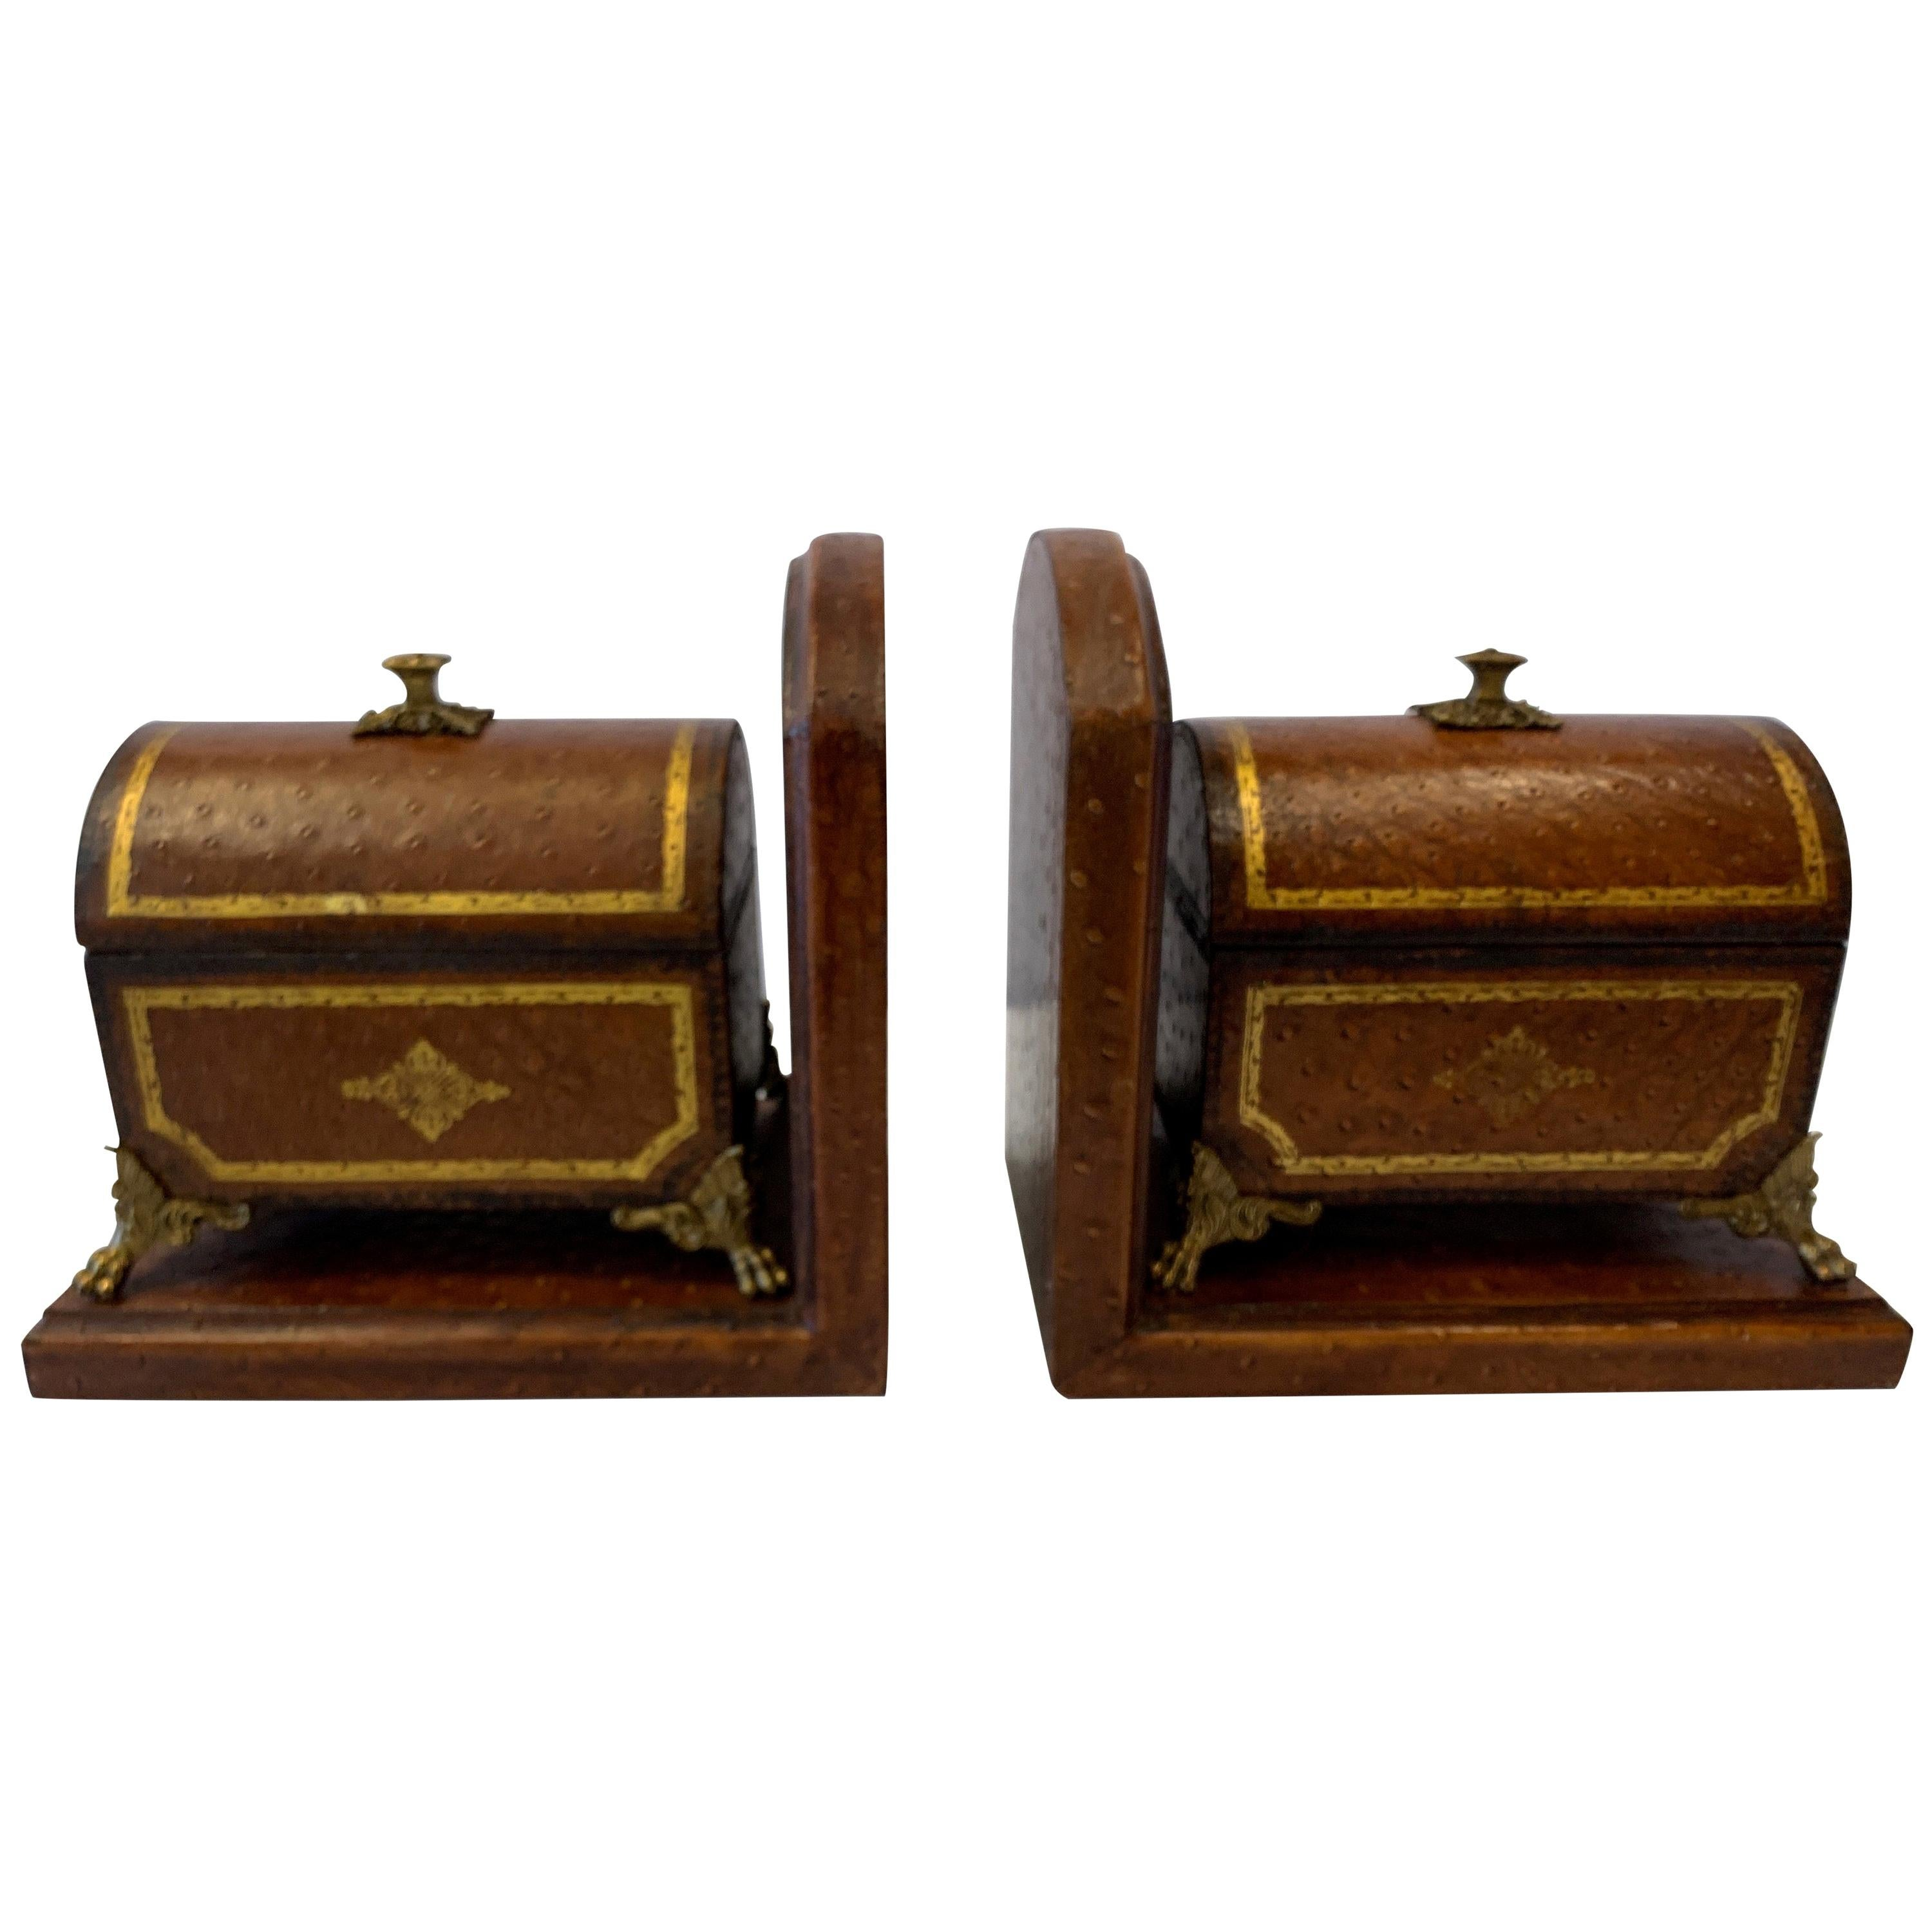 Faux Ostrich Leather Maitland Smith Bookends with Decorative Boxes That Open